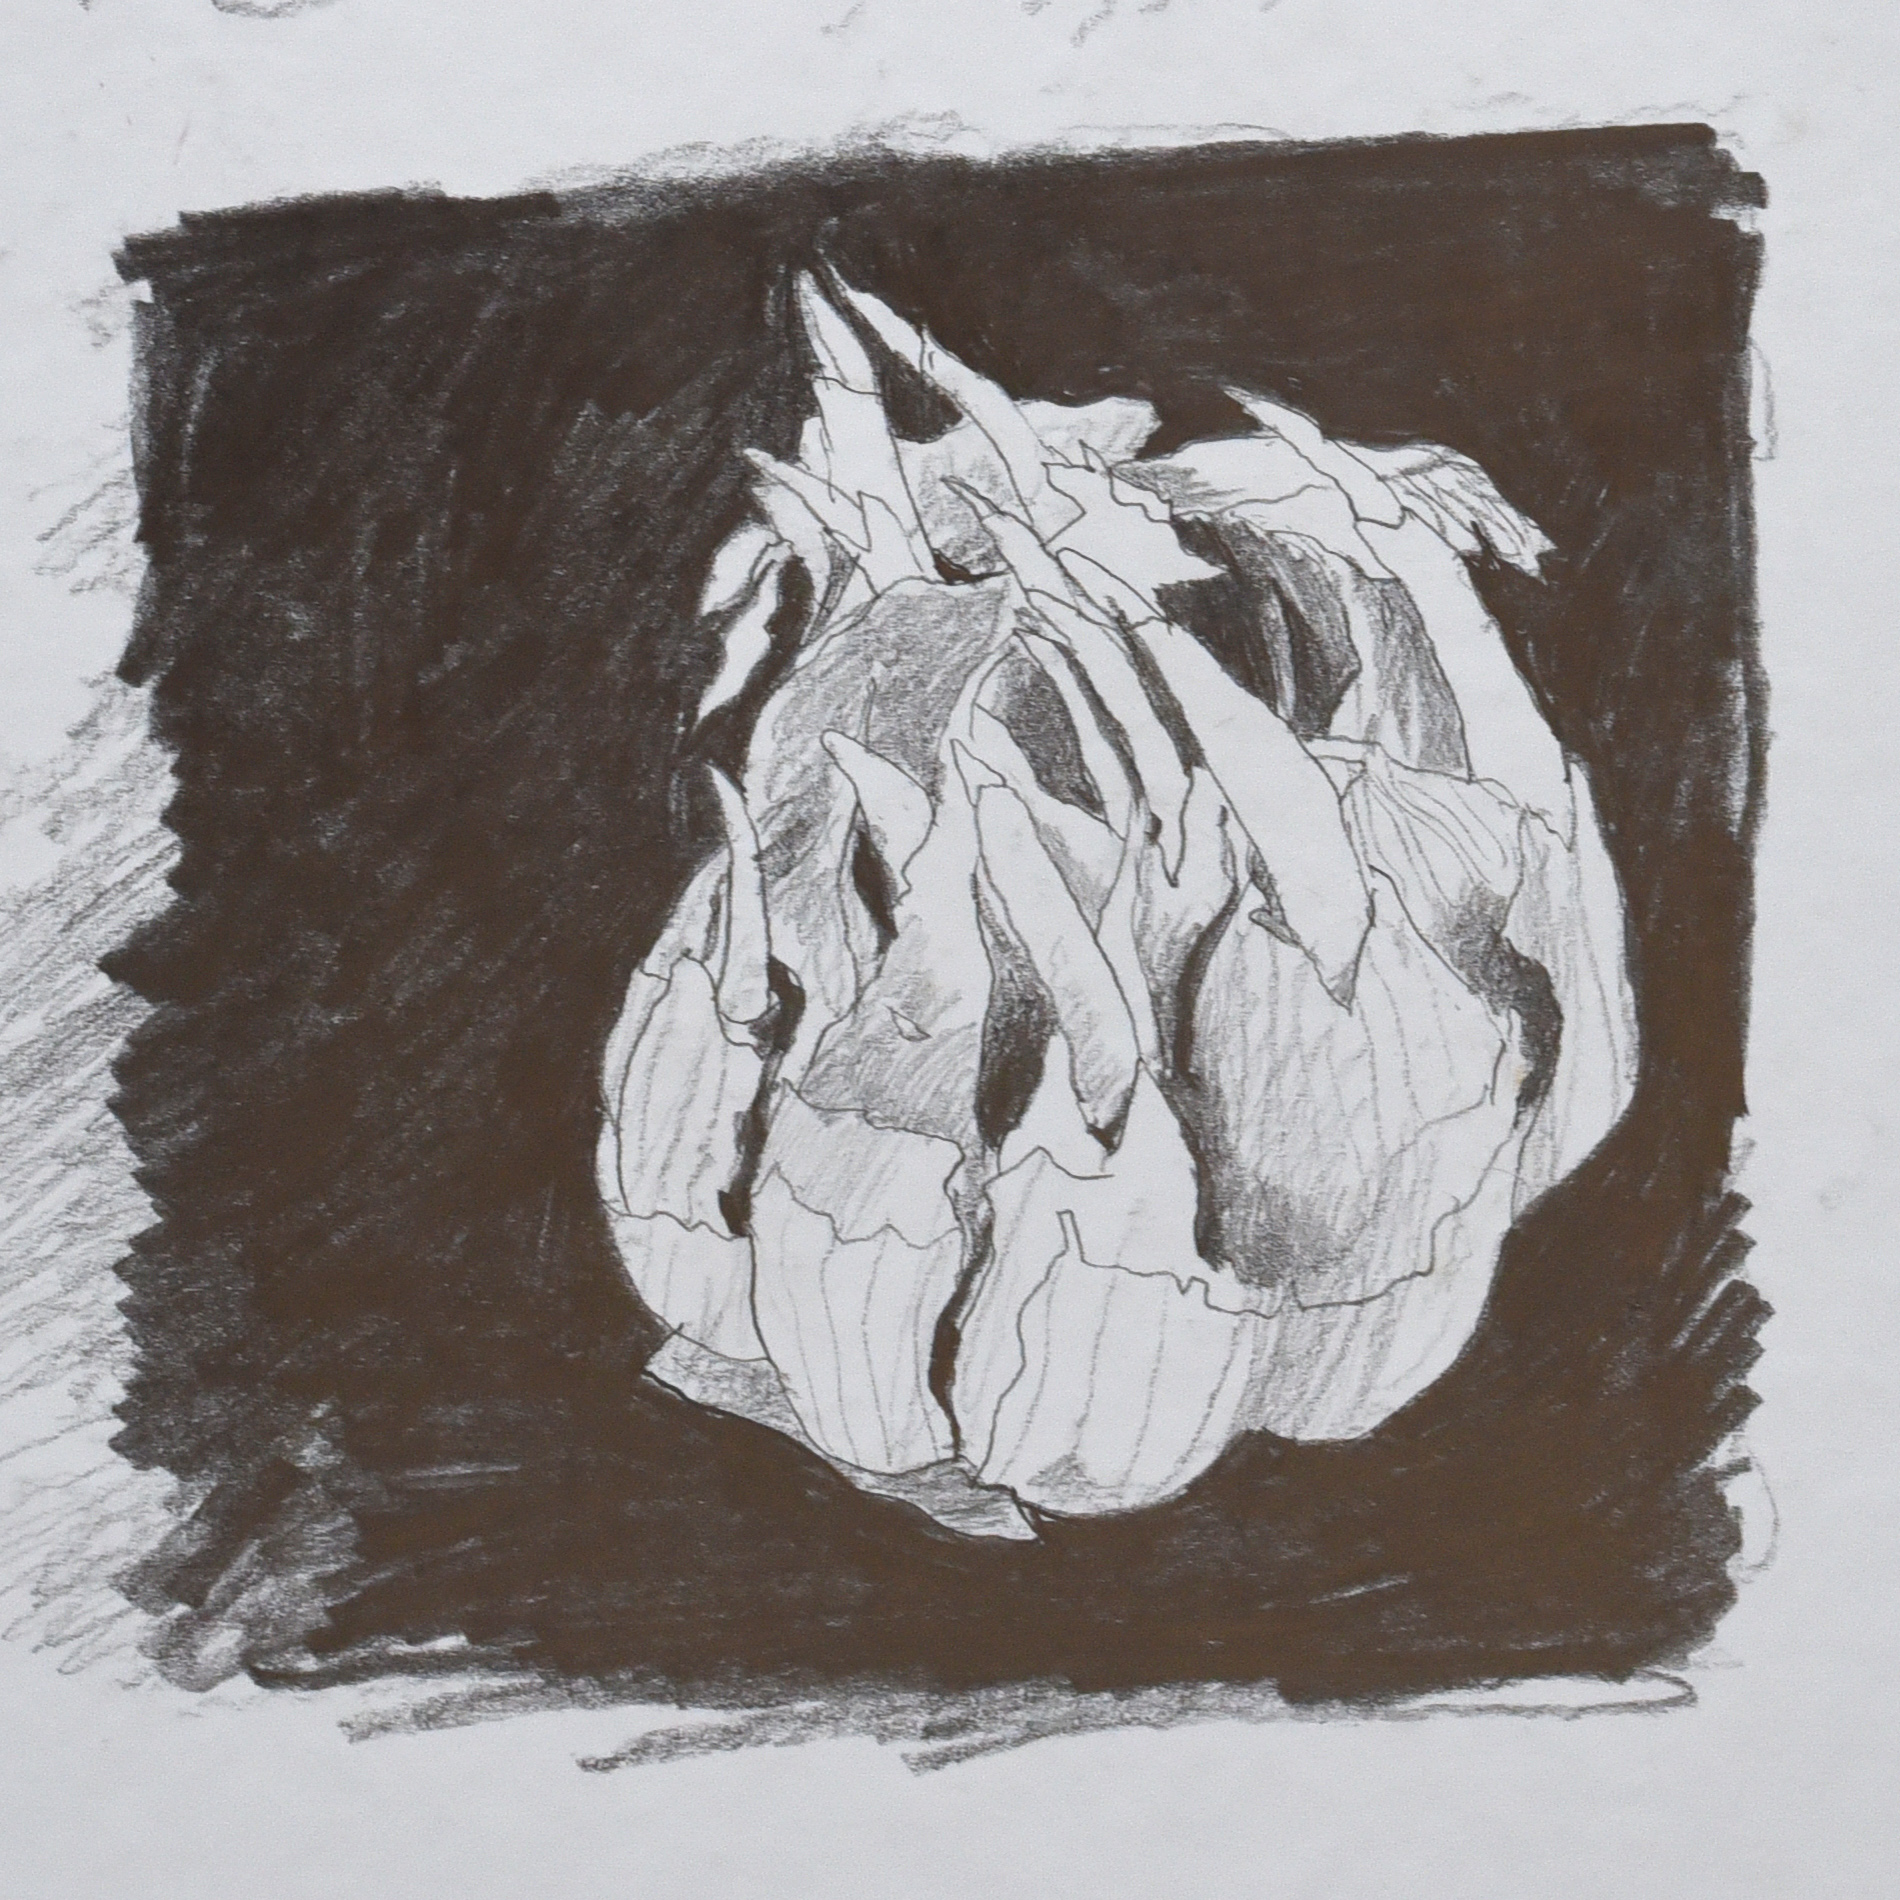 Charcoal drawing of a sprouting onion.